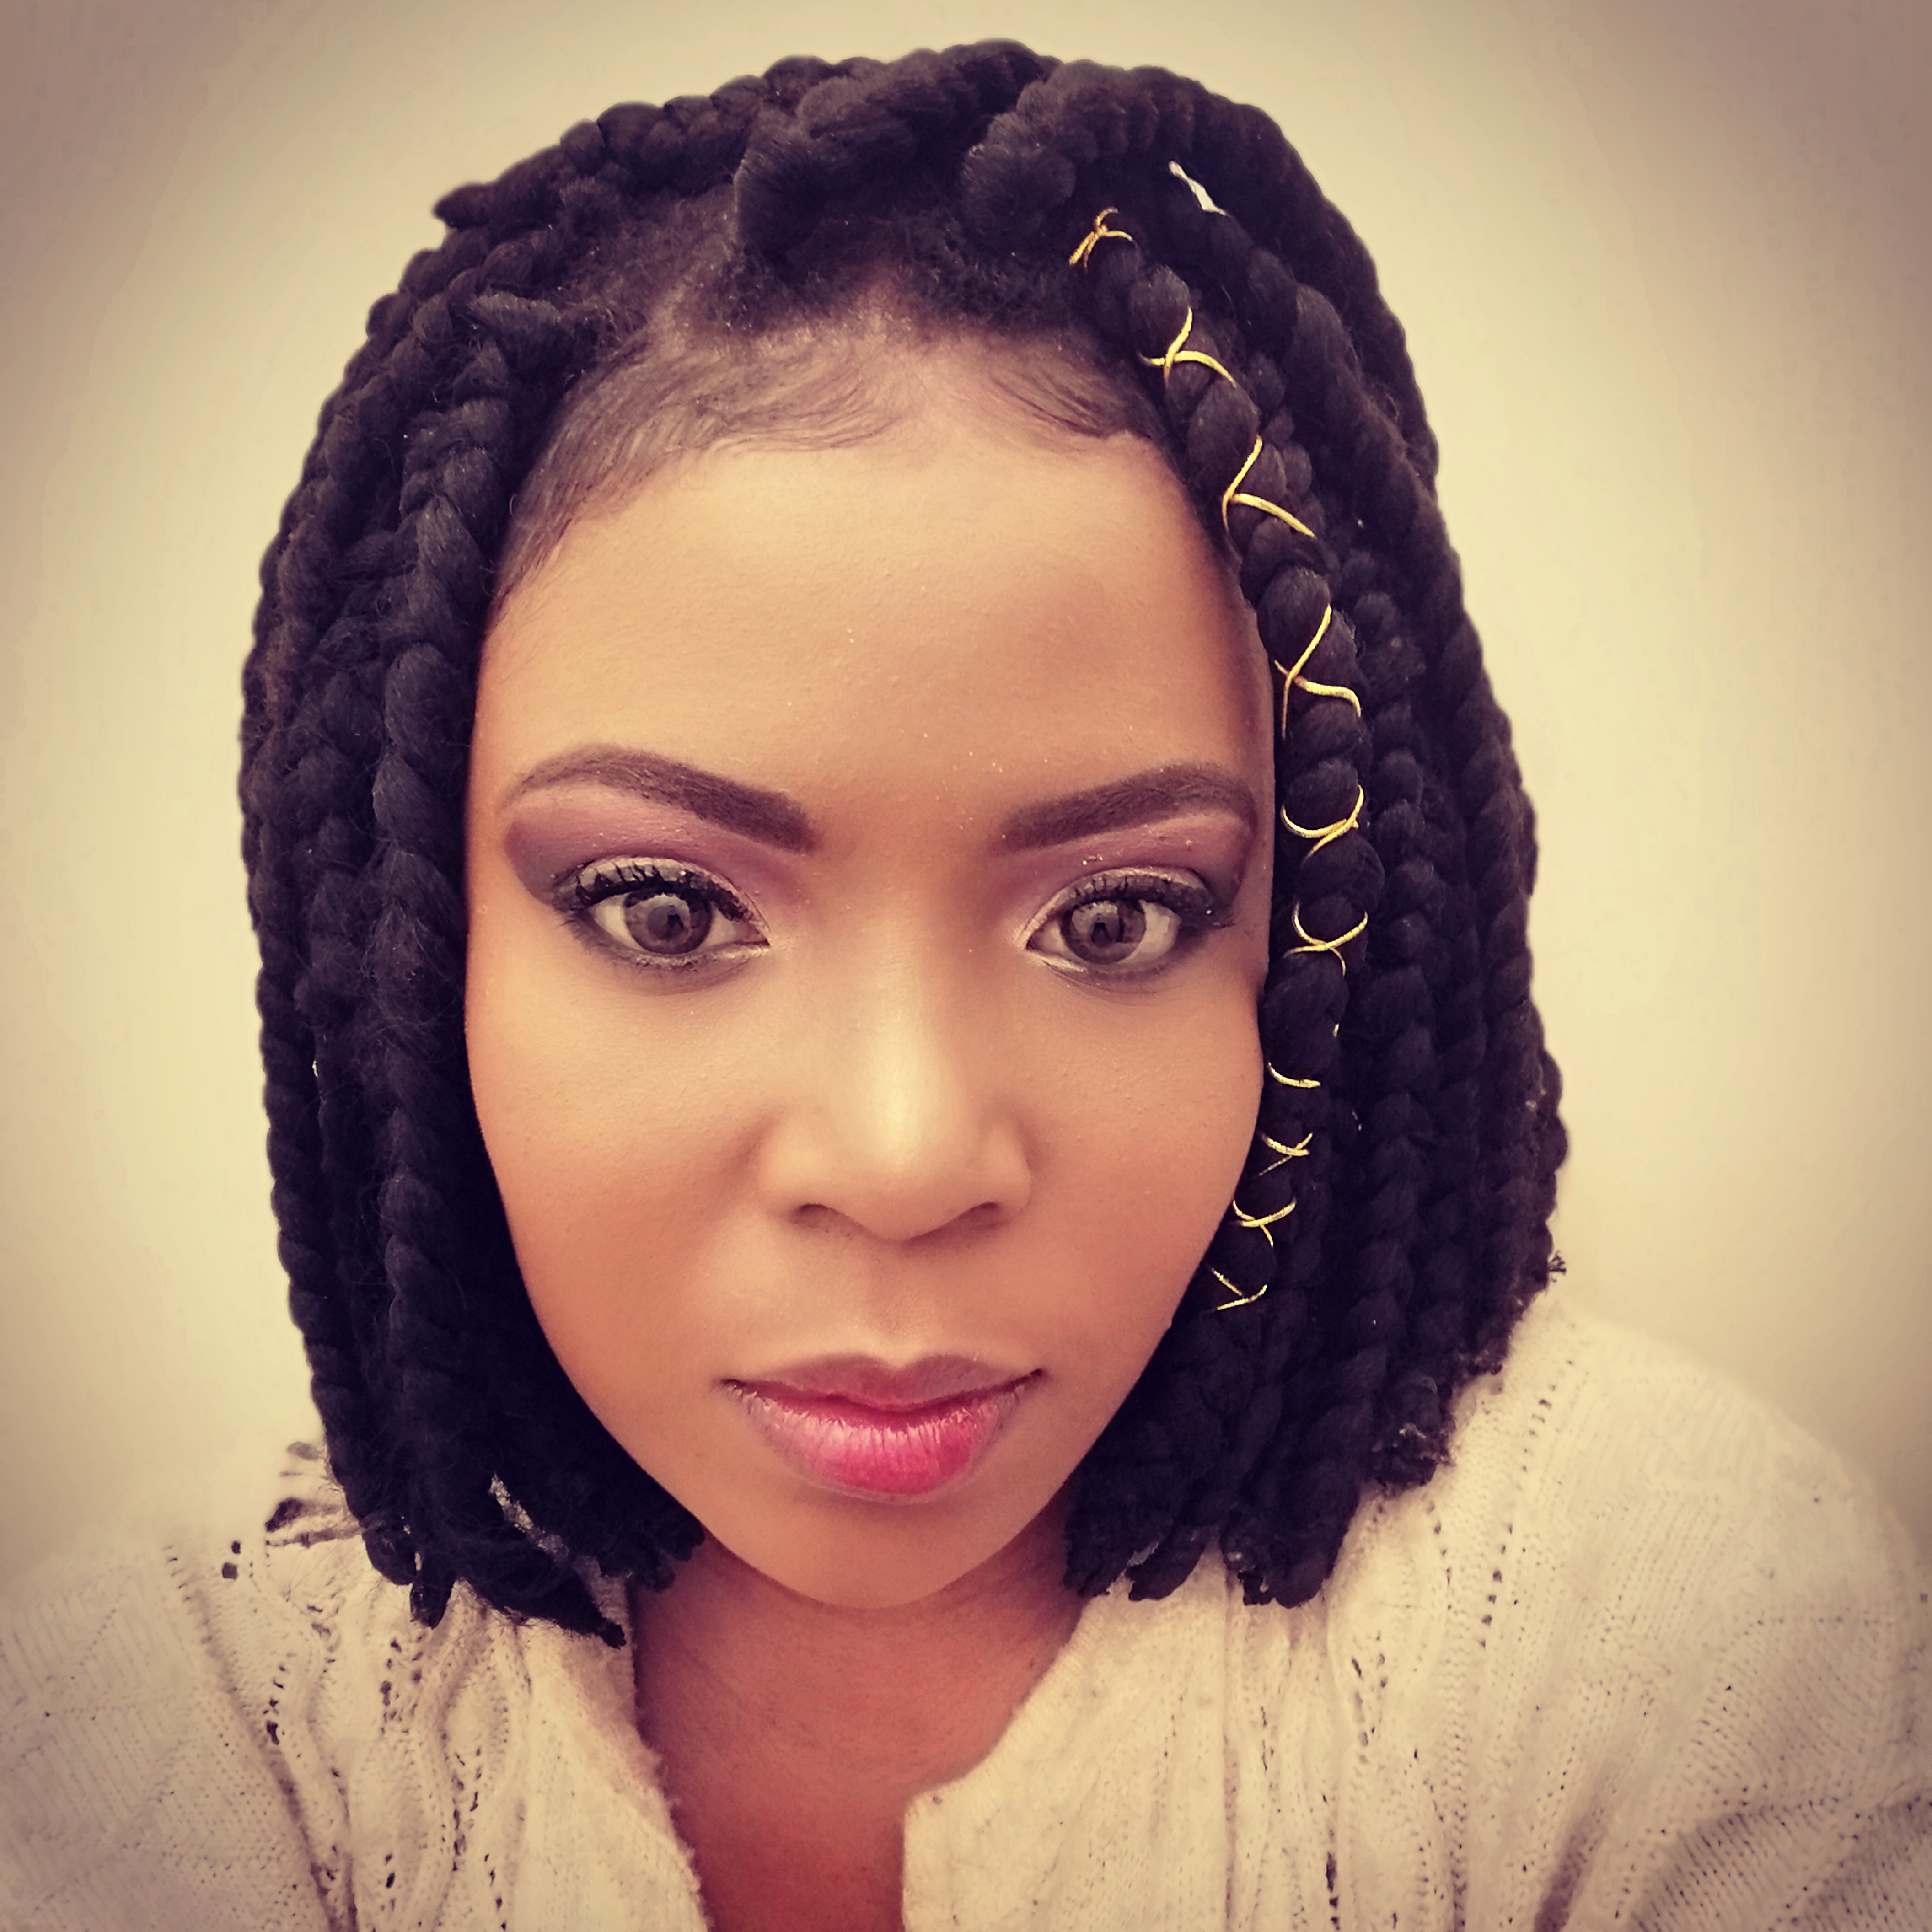 salon de coiffure afro tresse tresses box braids crochet braids vanilles tissages paris 75 77 78 91 92 93 94 95 FHXVDDXI